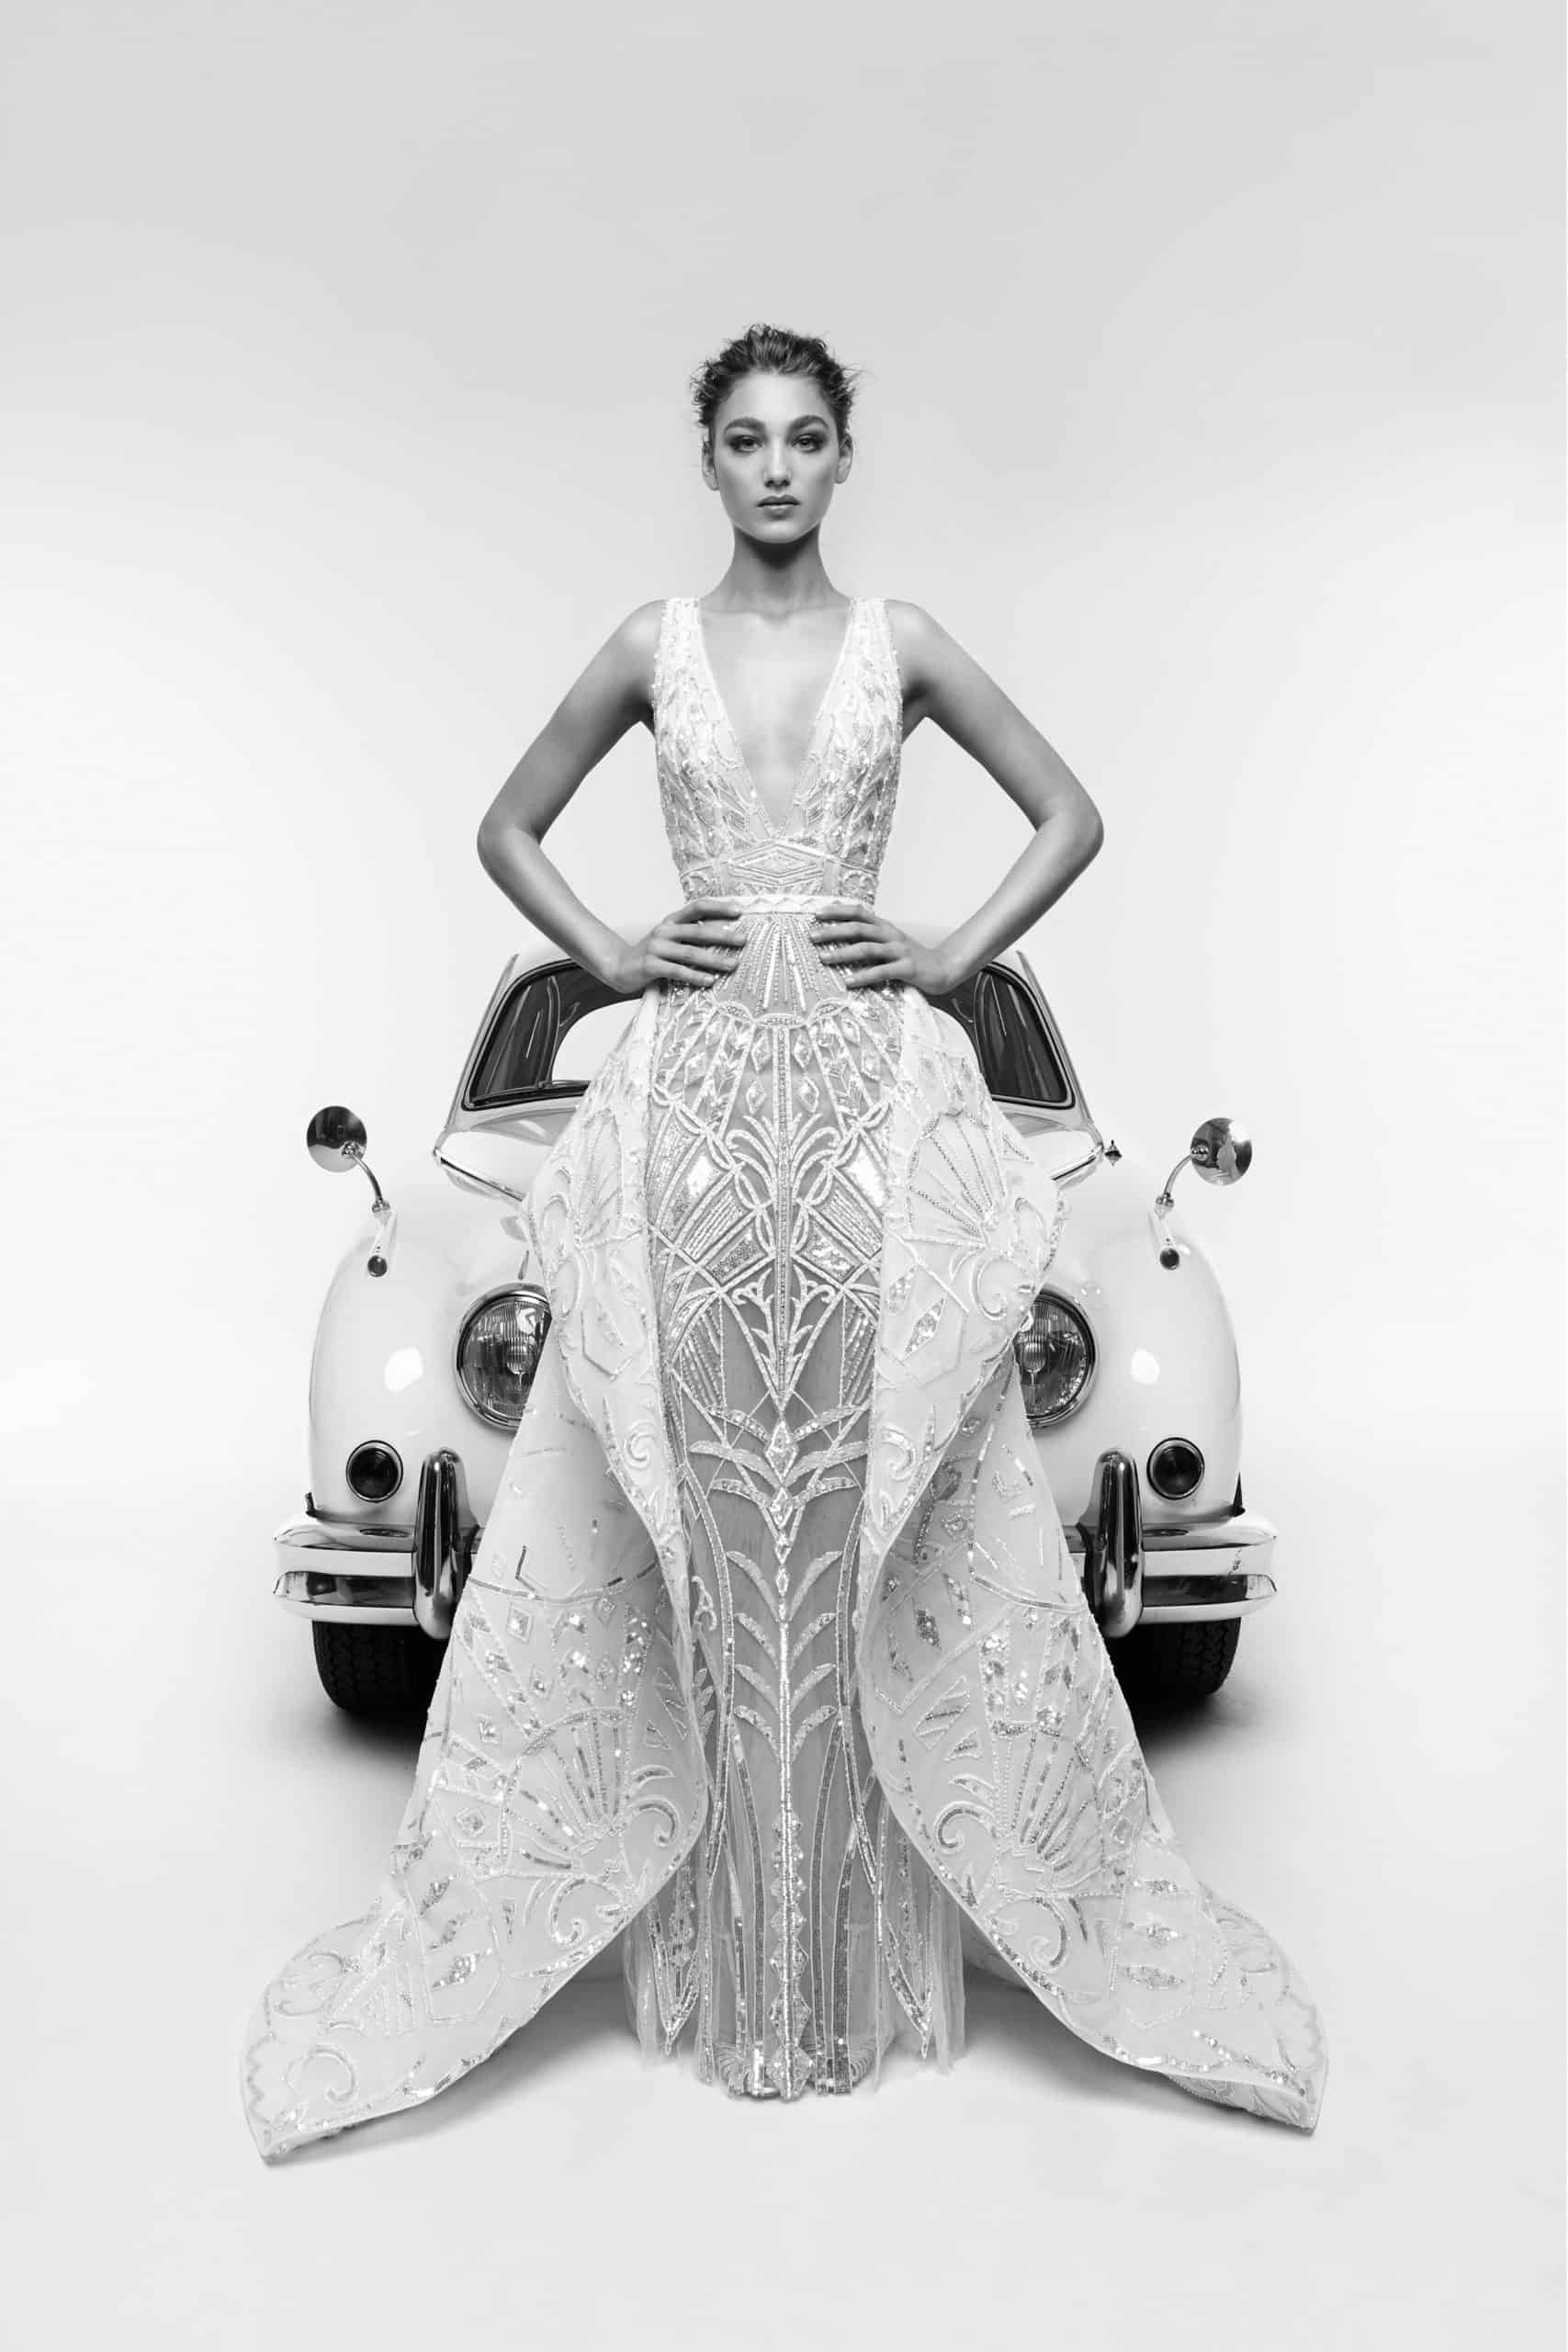 wedding dress with metallic lace details by Zuhair Murad